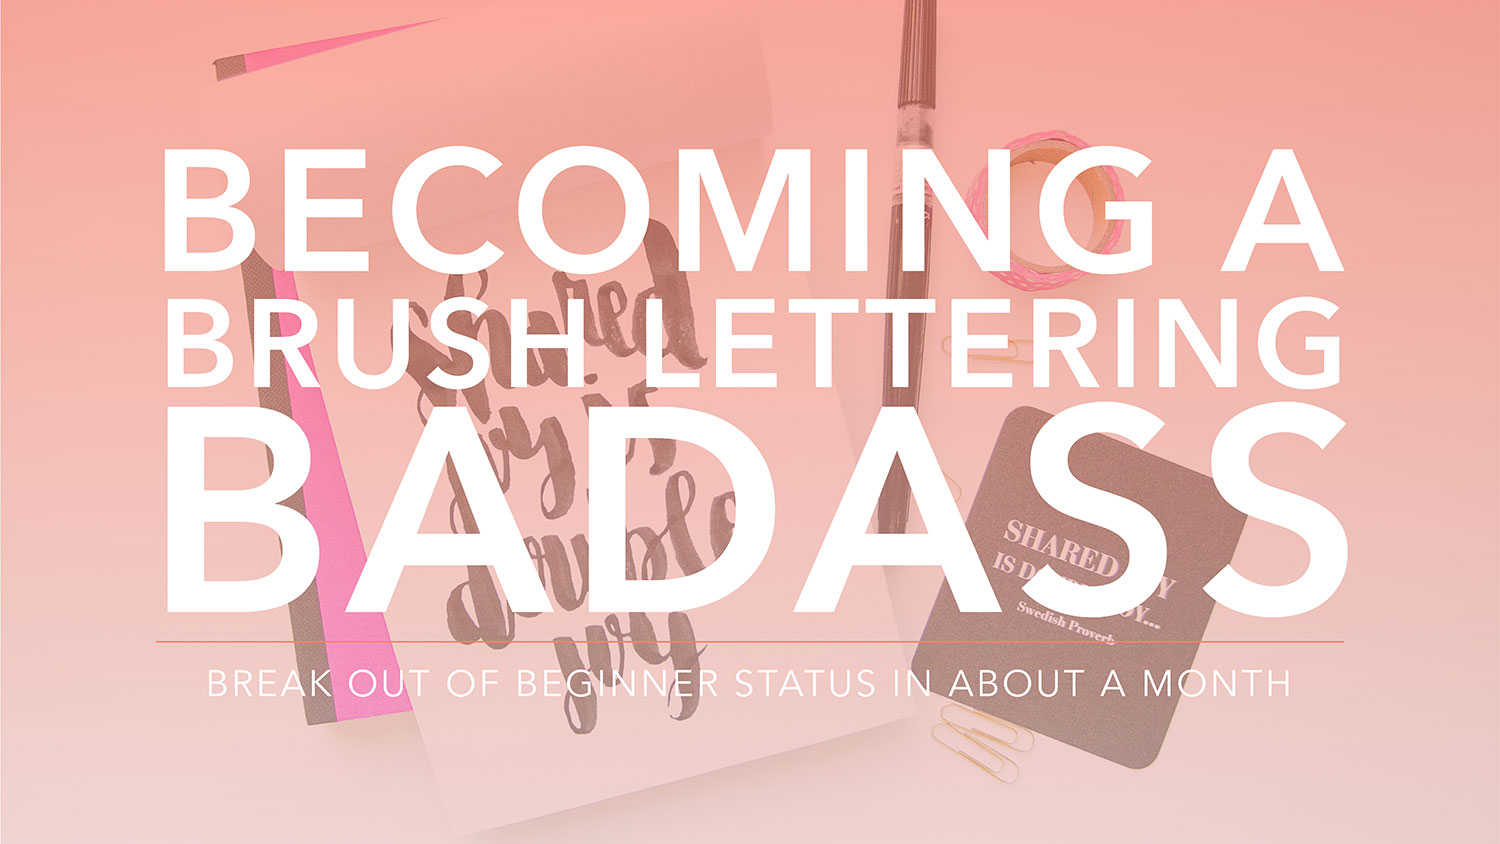 Becoming a Brush Lettering Badass